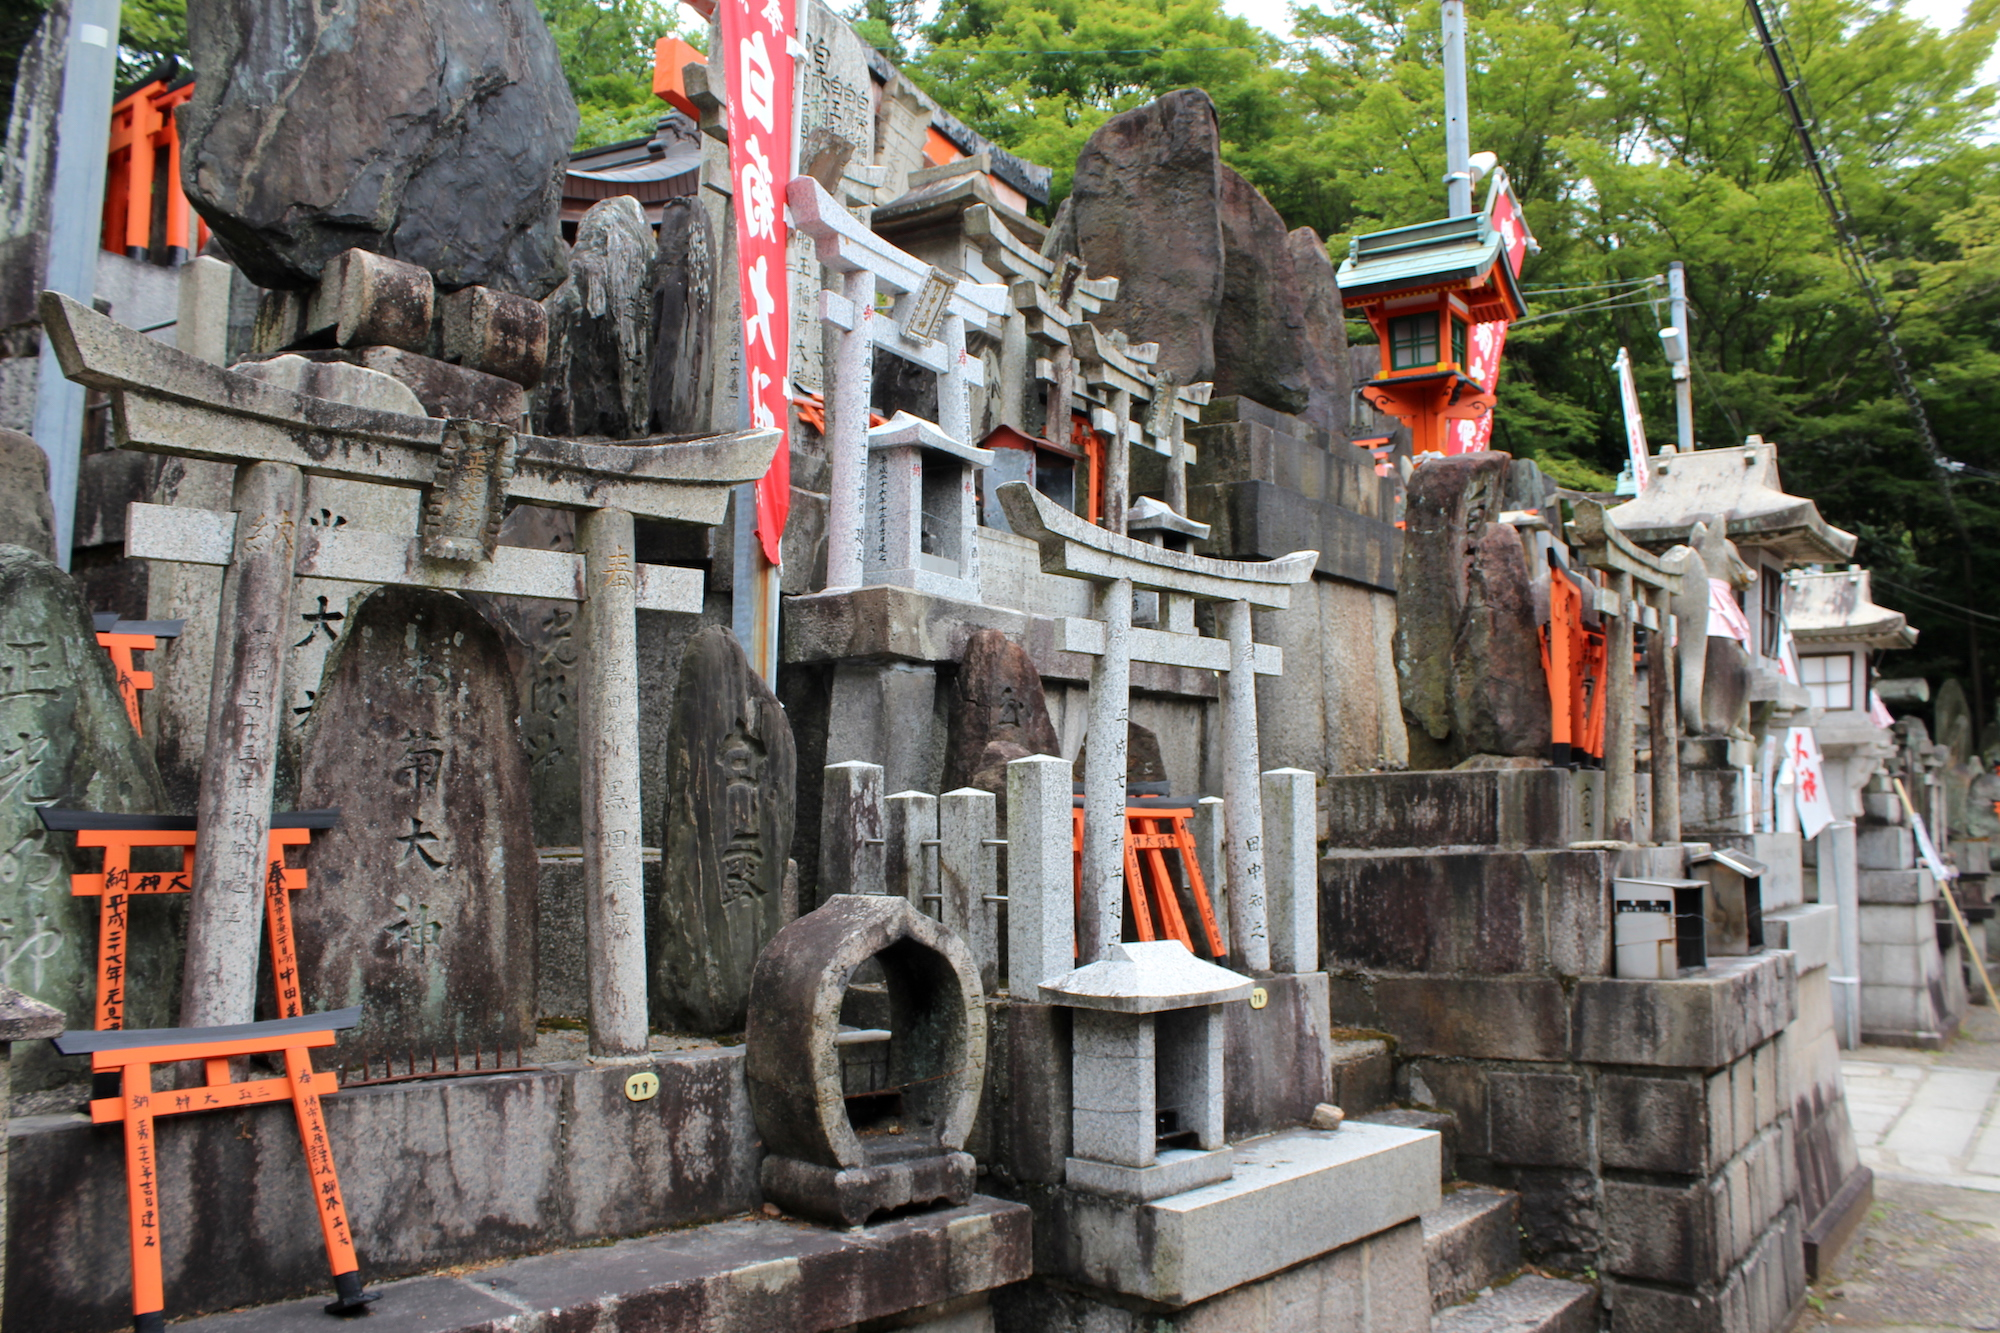 A collection of offering shrines in Inari Jinja